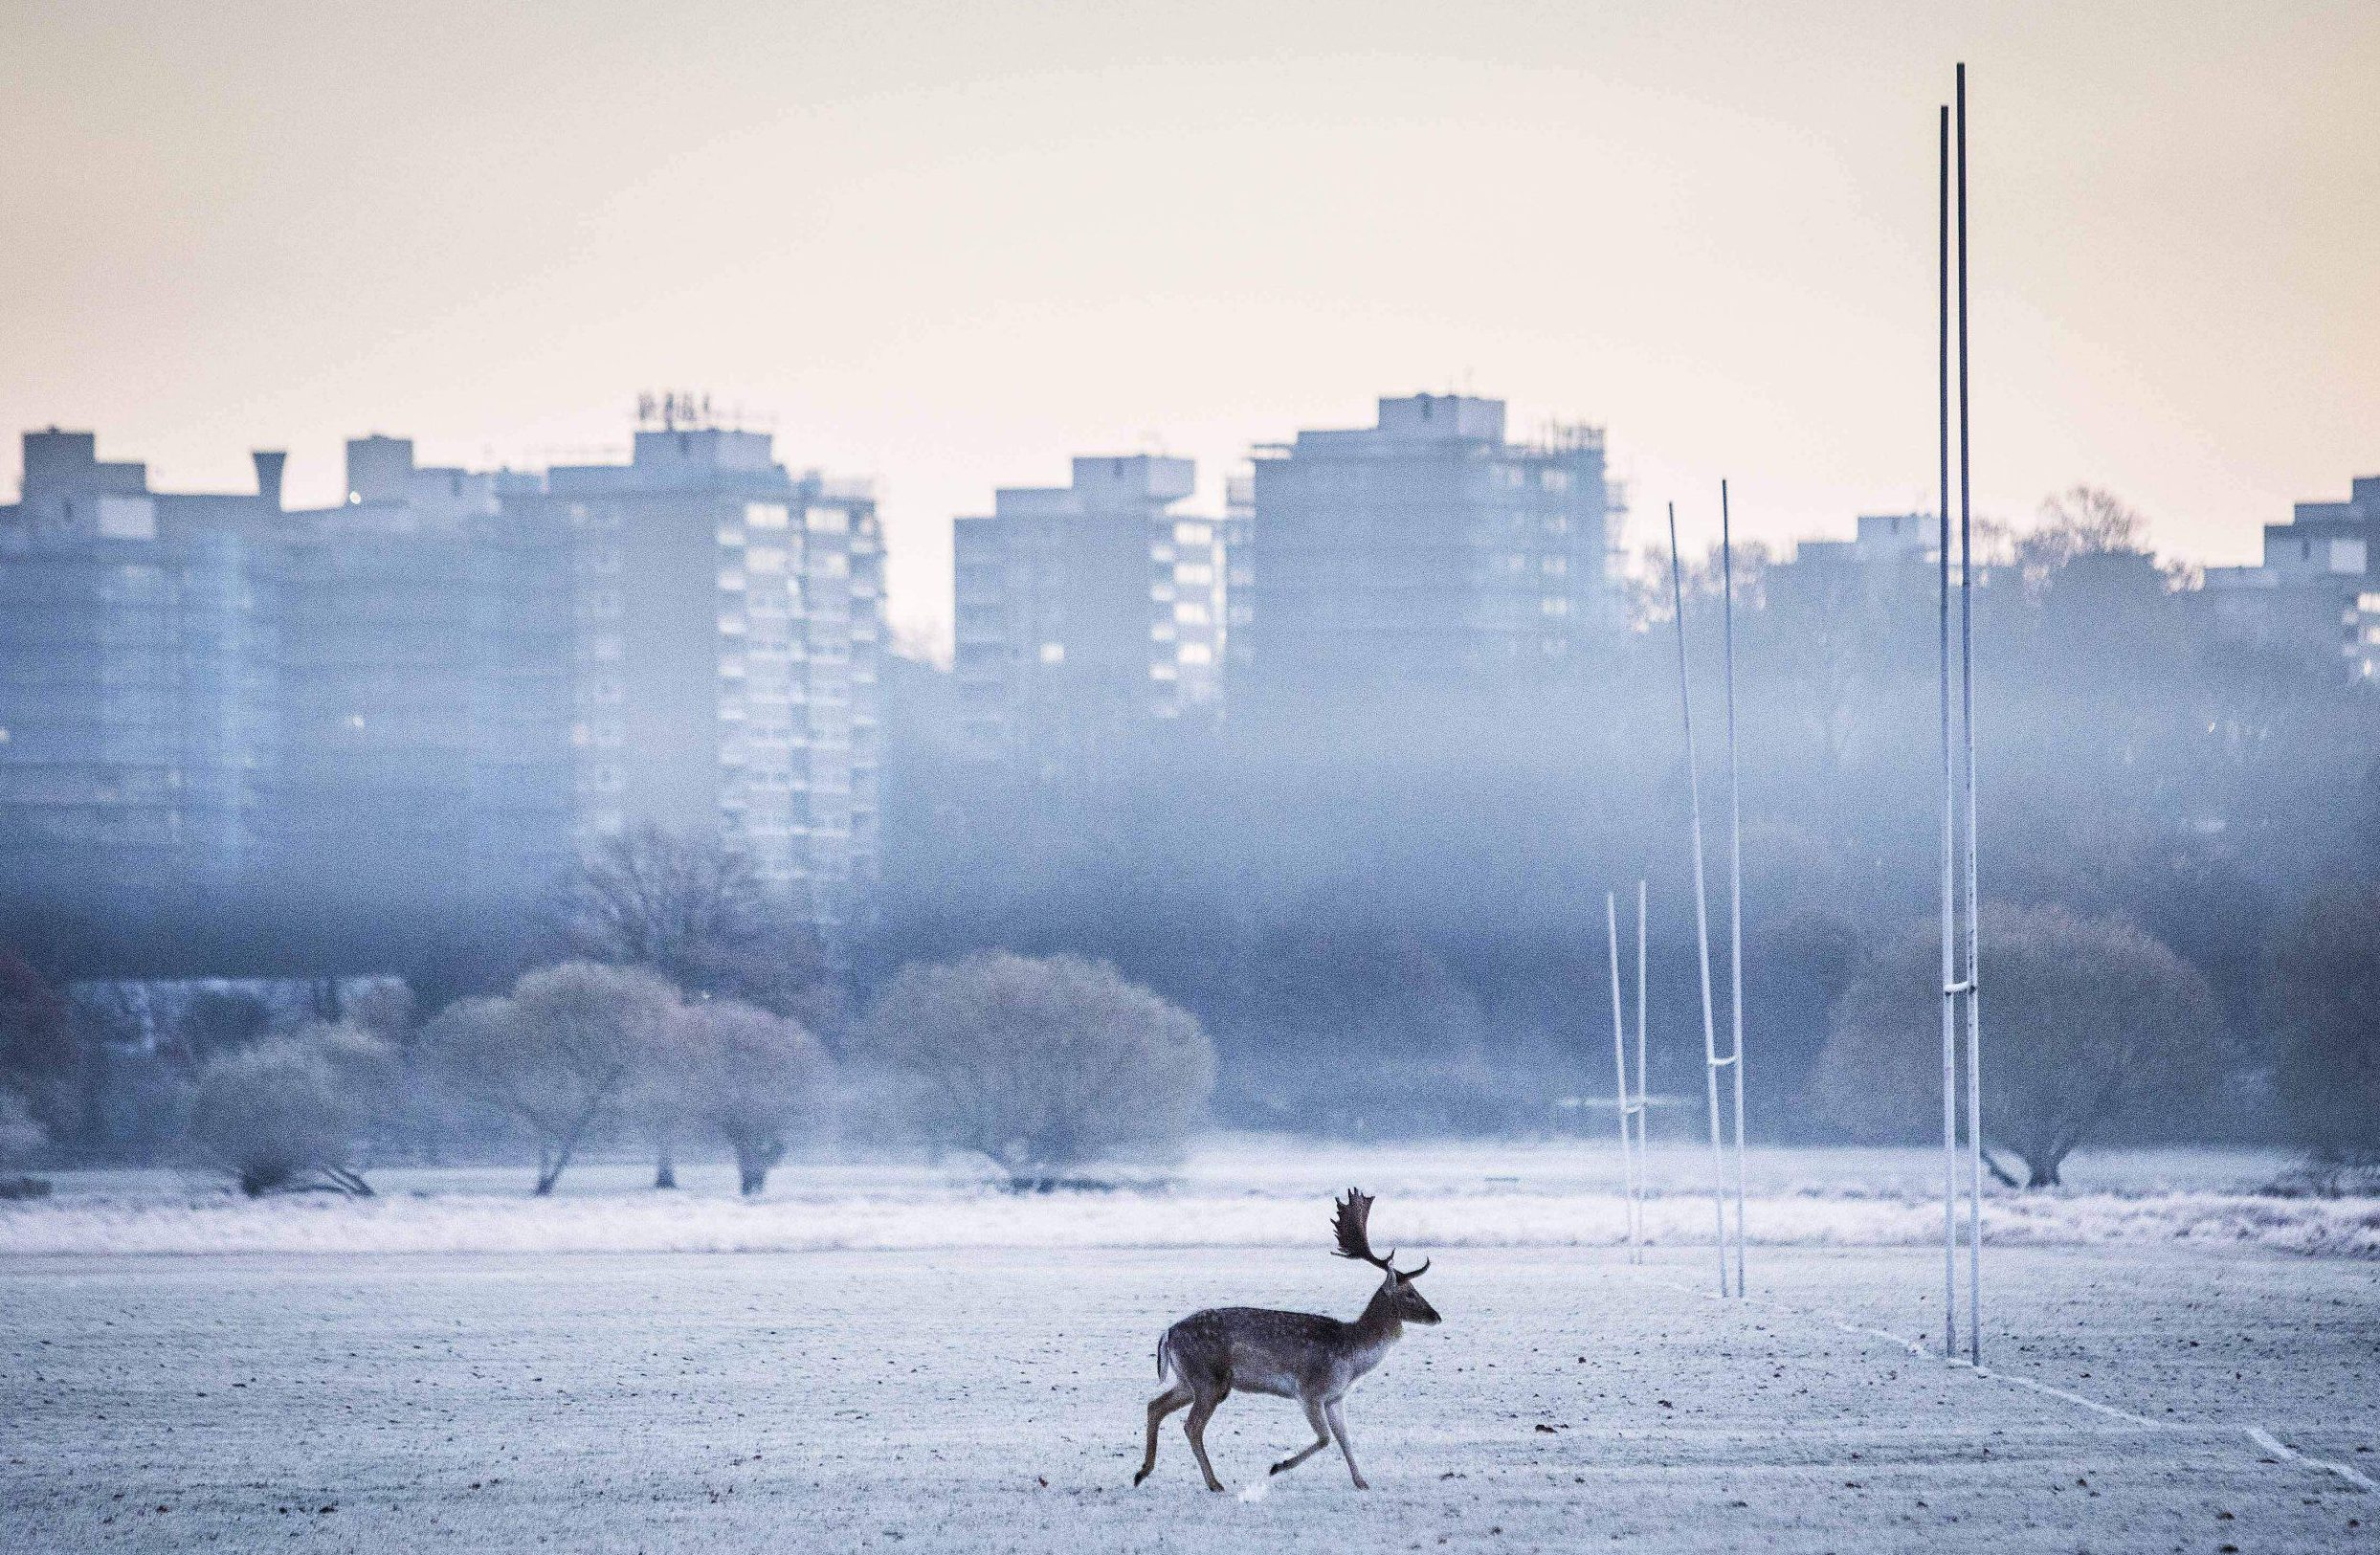 Mandatory Credit: Photo by Rick Findler/REX/Shutterstock (7525770c)nA stag runs through a frosty Richmond Park early this morning as temperatures plummeted to -7C last nightnSeasonal weather, Richmond Park, London, UK - 29 Nov 2016nn